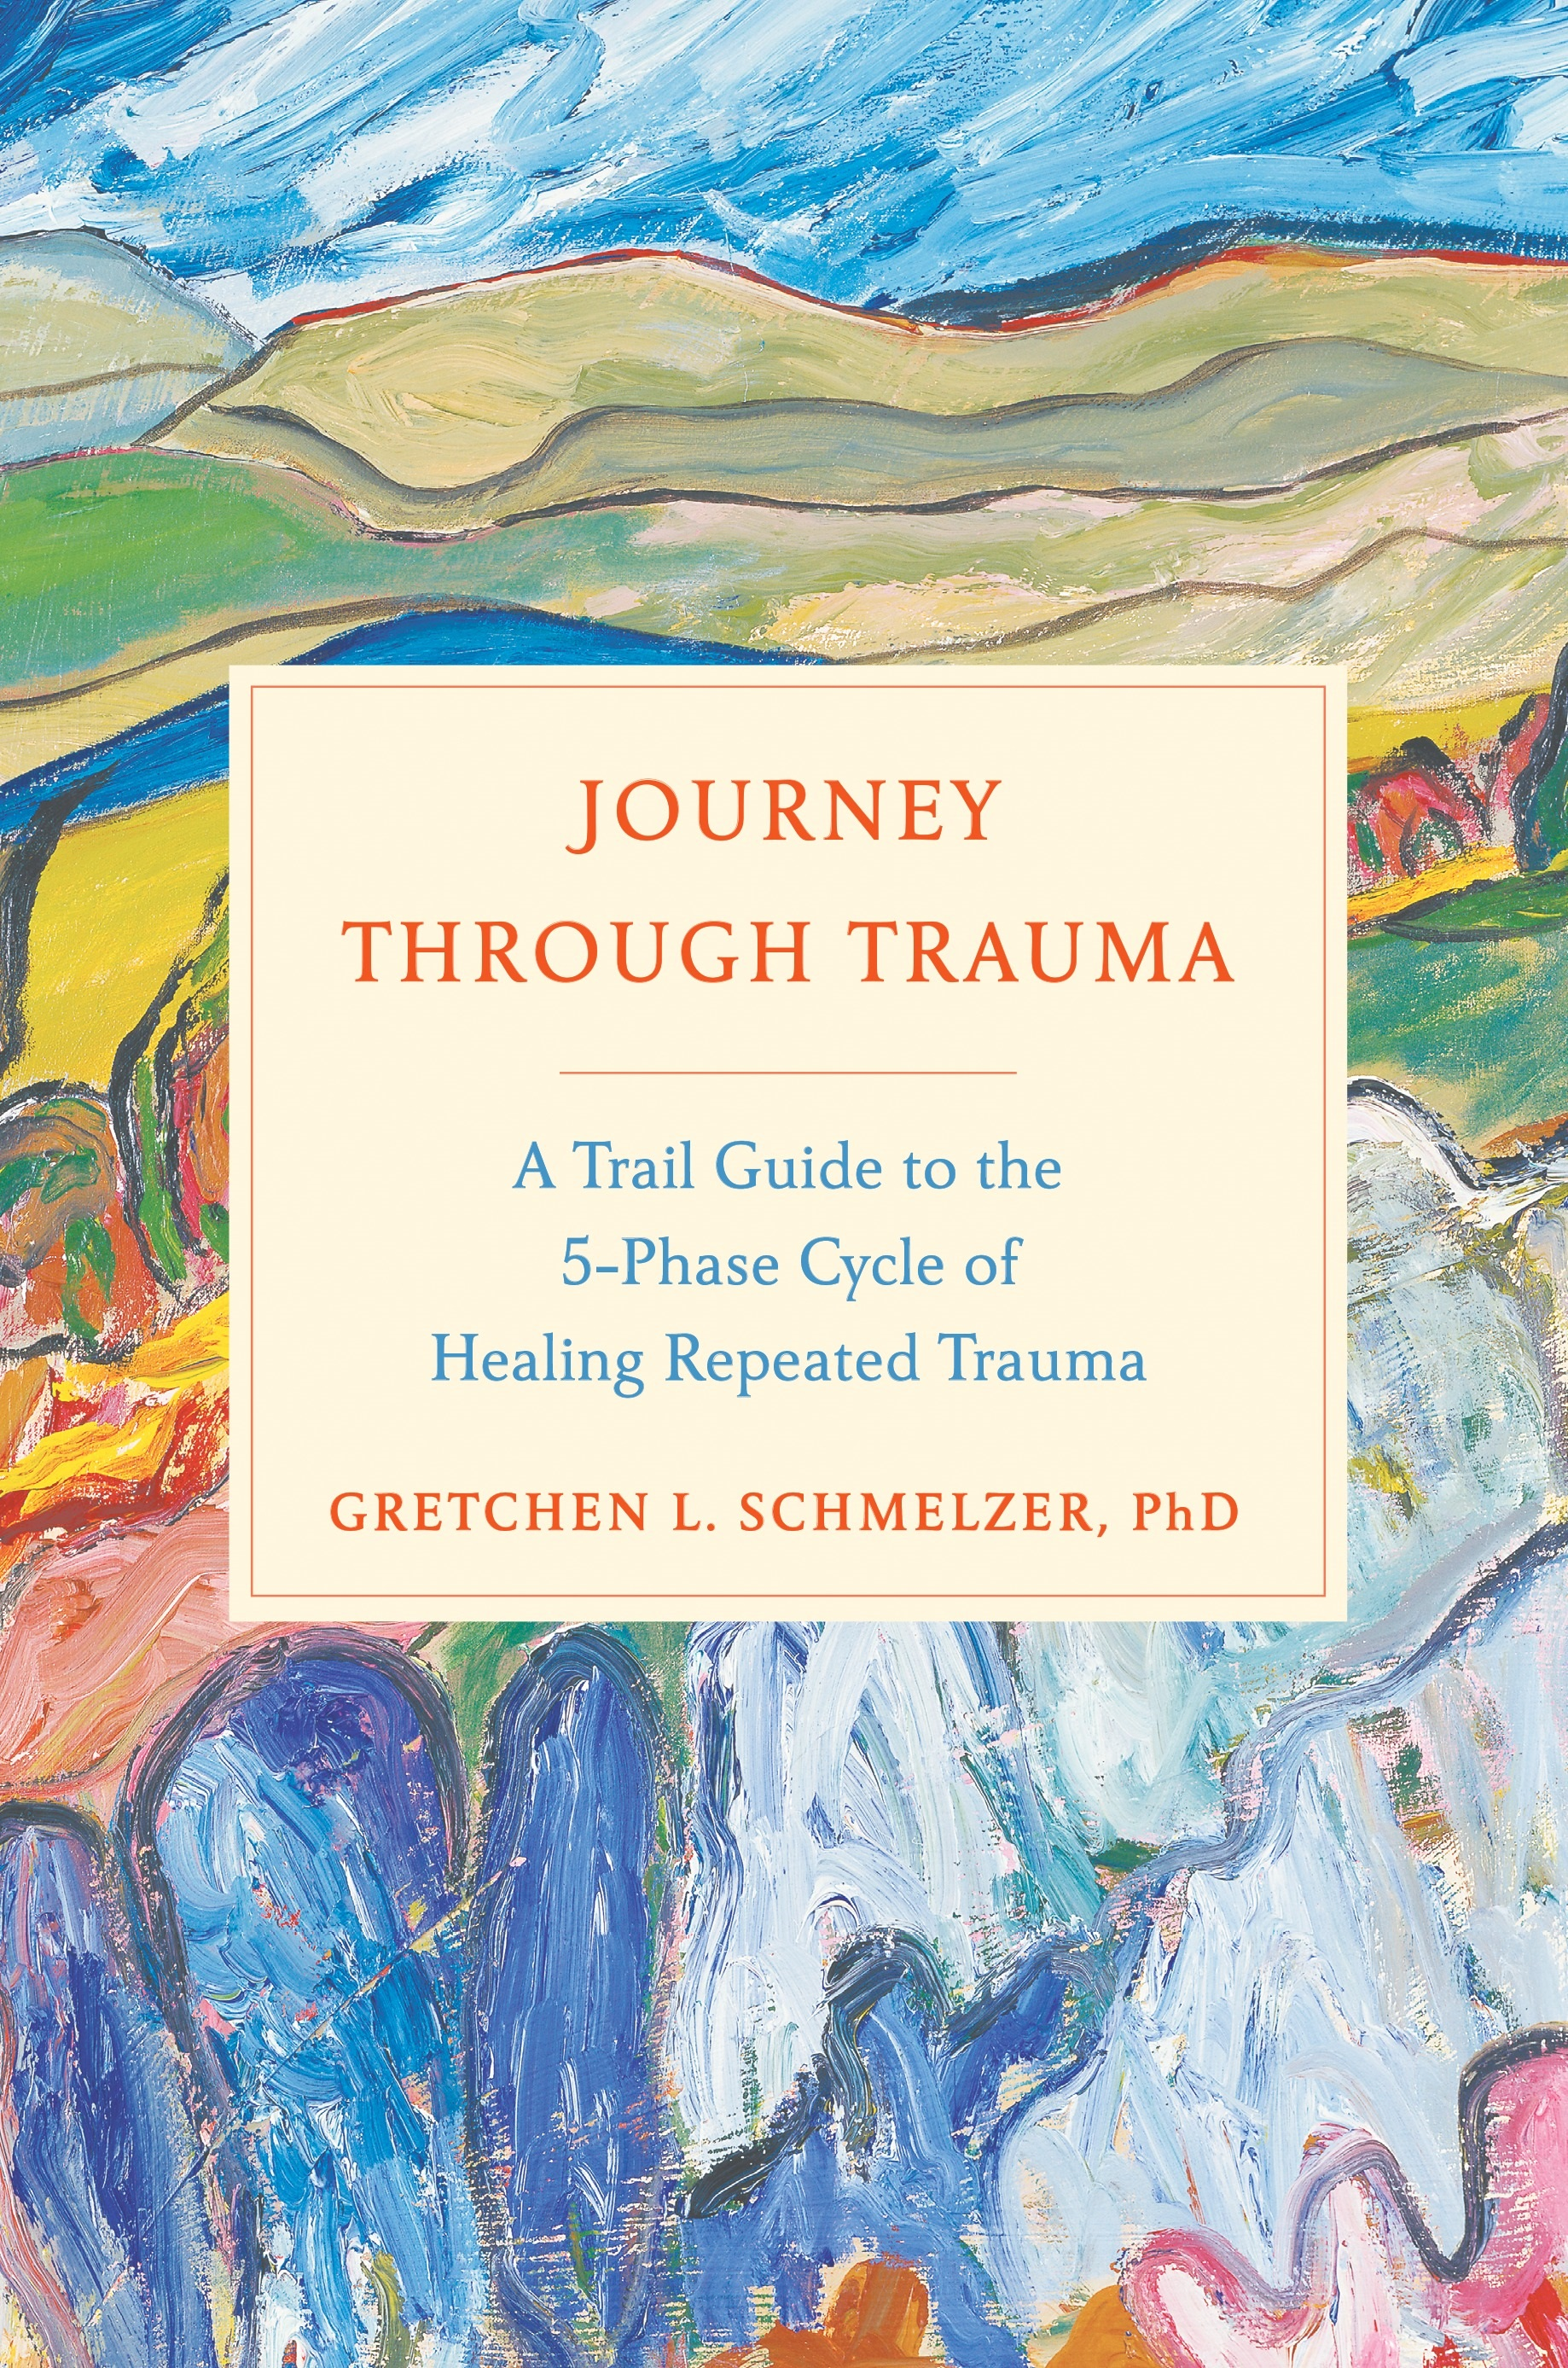 Book Launch: Journey Through Trauma: A Trail Guide to the 5-Phase Cycle of Healing Repeated Trauma by Gretchen L. Schmelzer, PhD — in conversation w/ Tracie Gardner